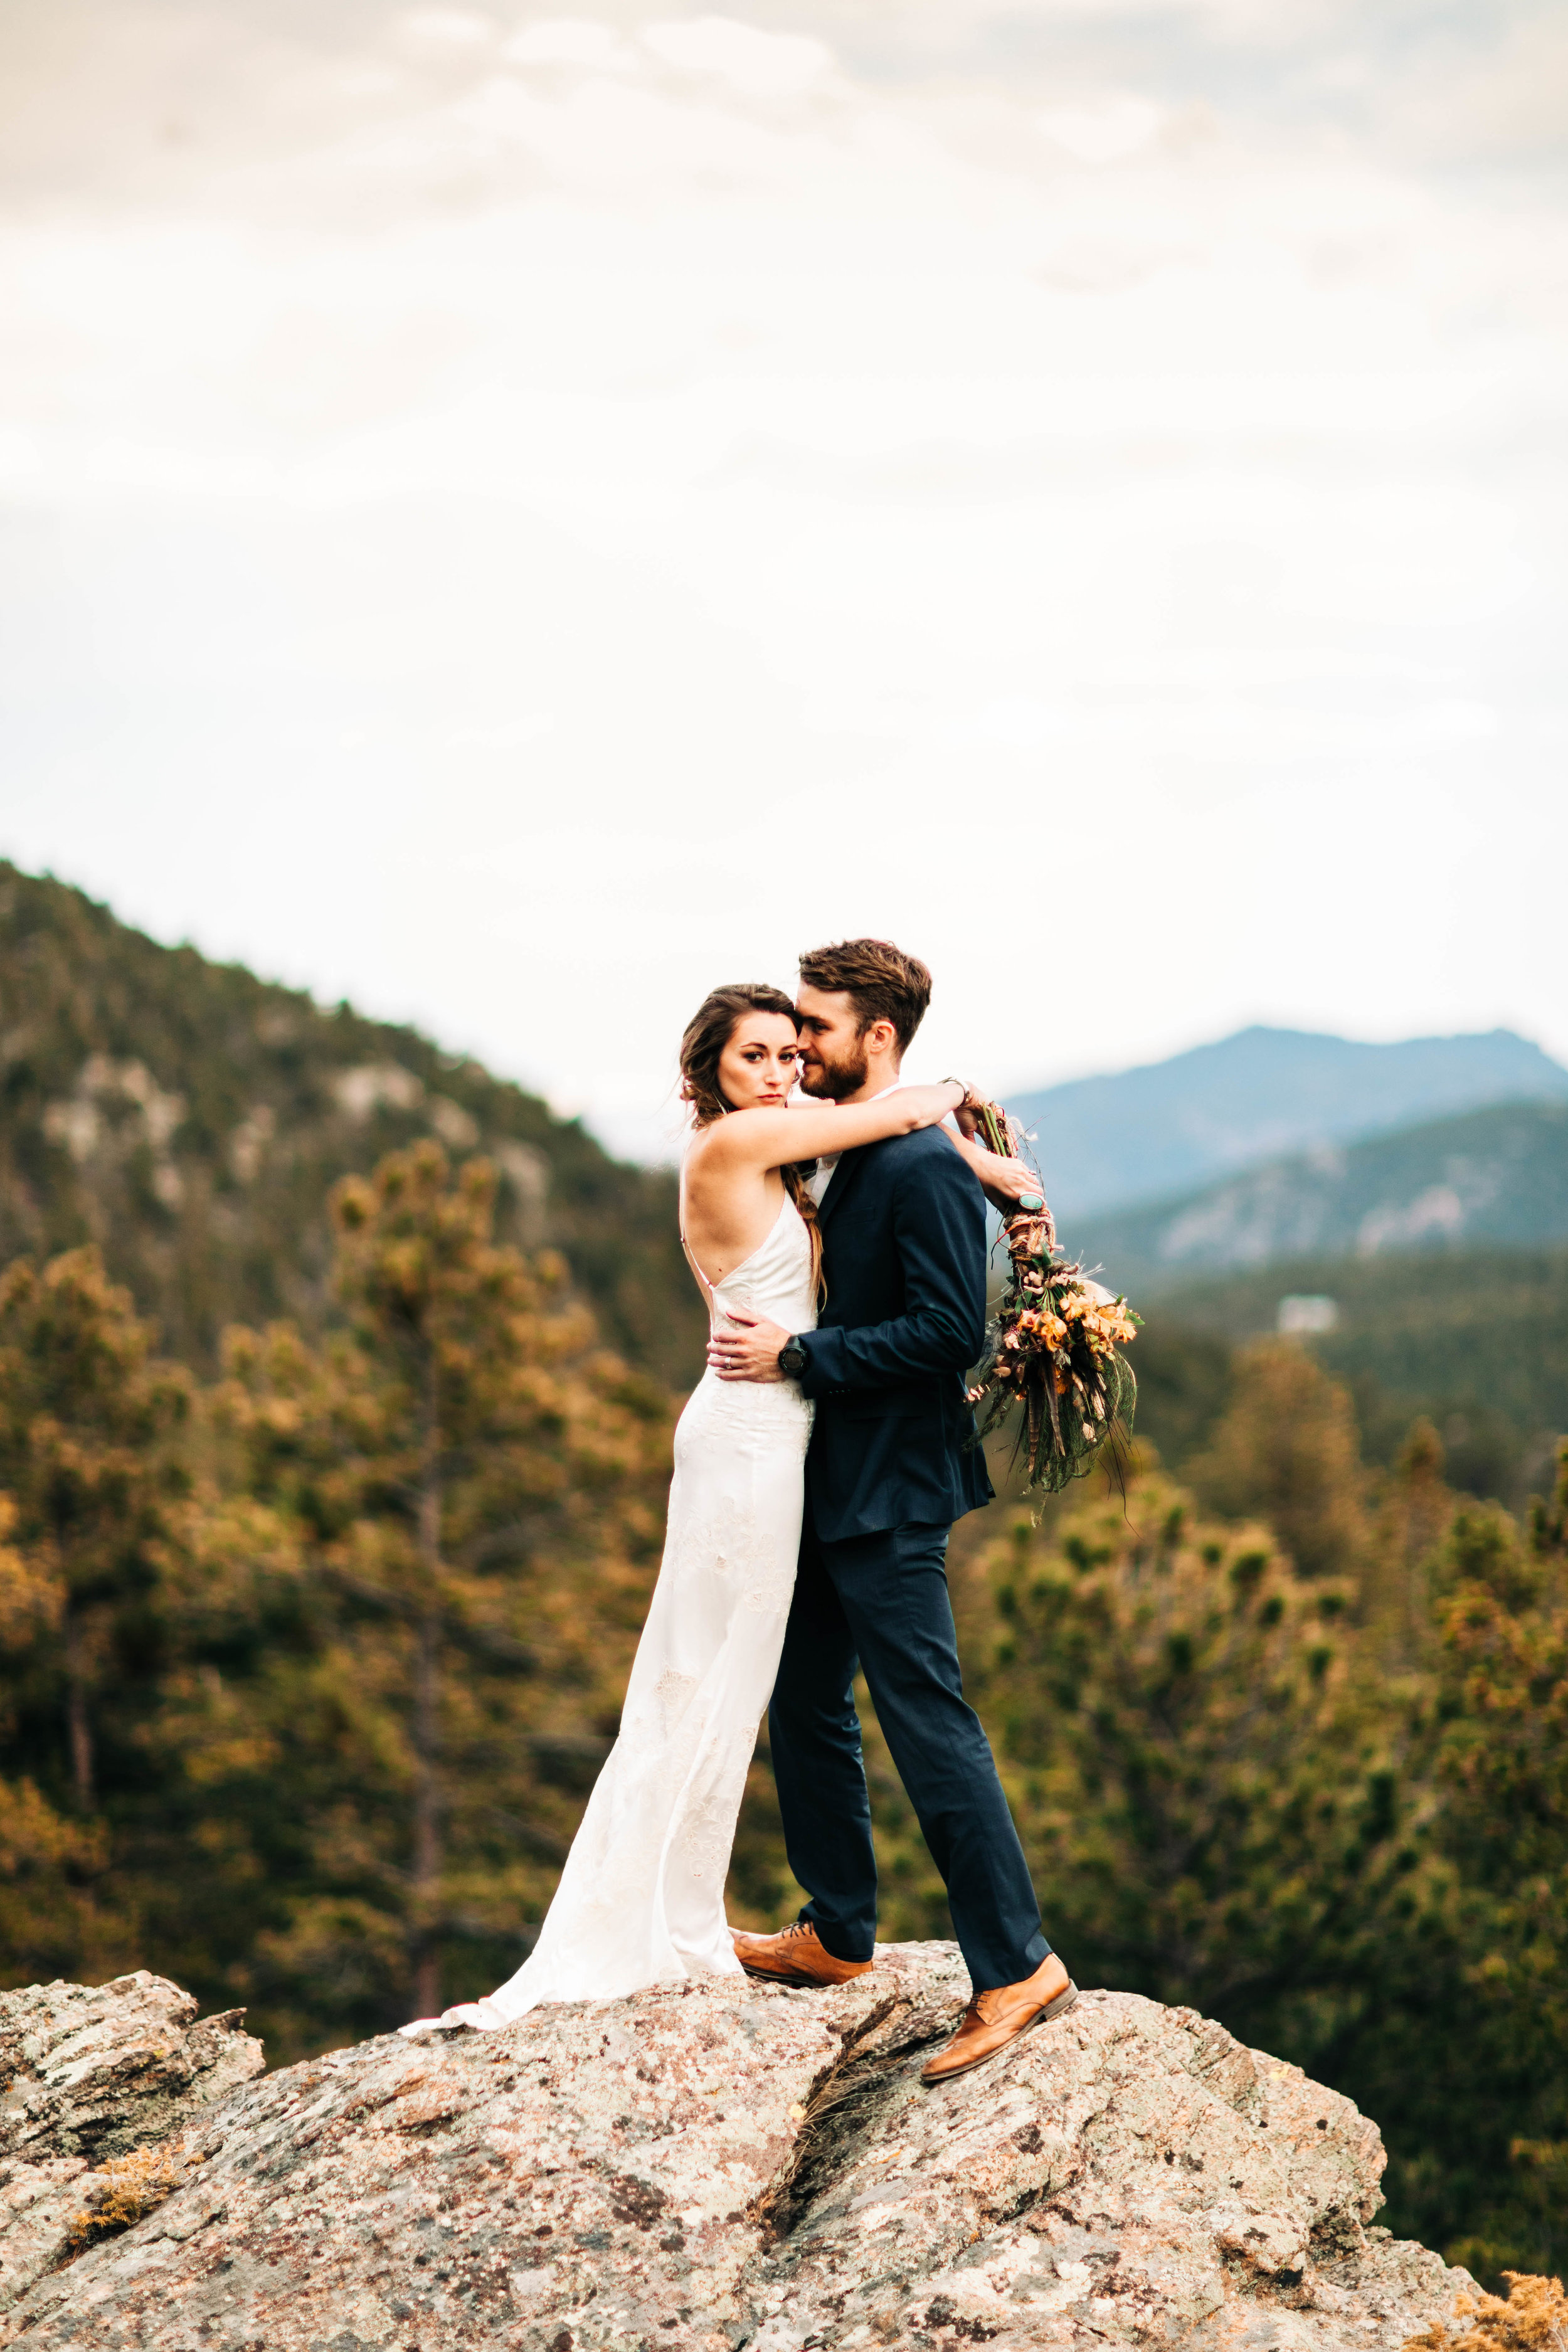 eloping couple embracing on a cliff in the Rocky Mountains of Colorado